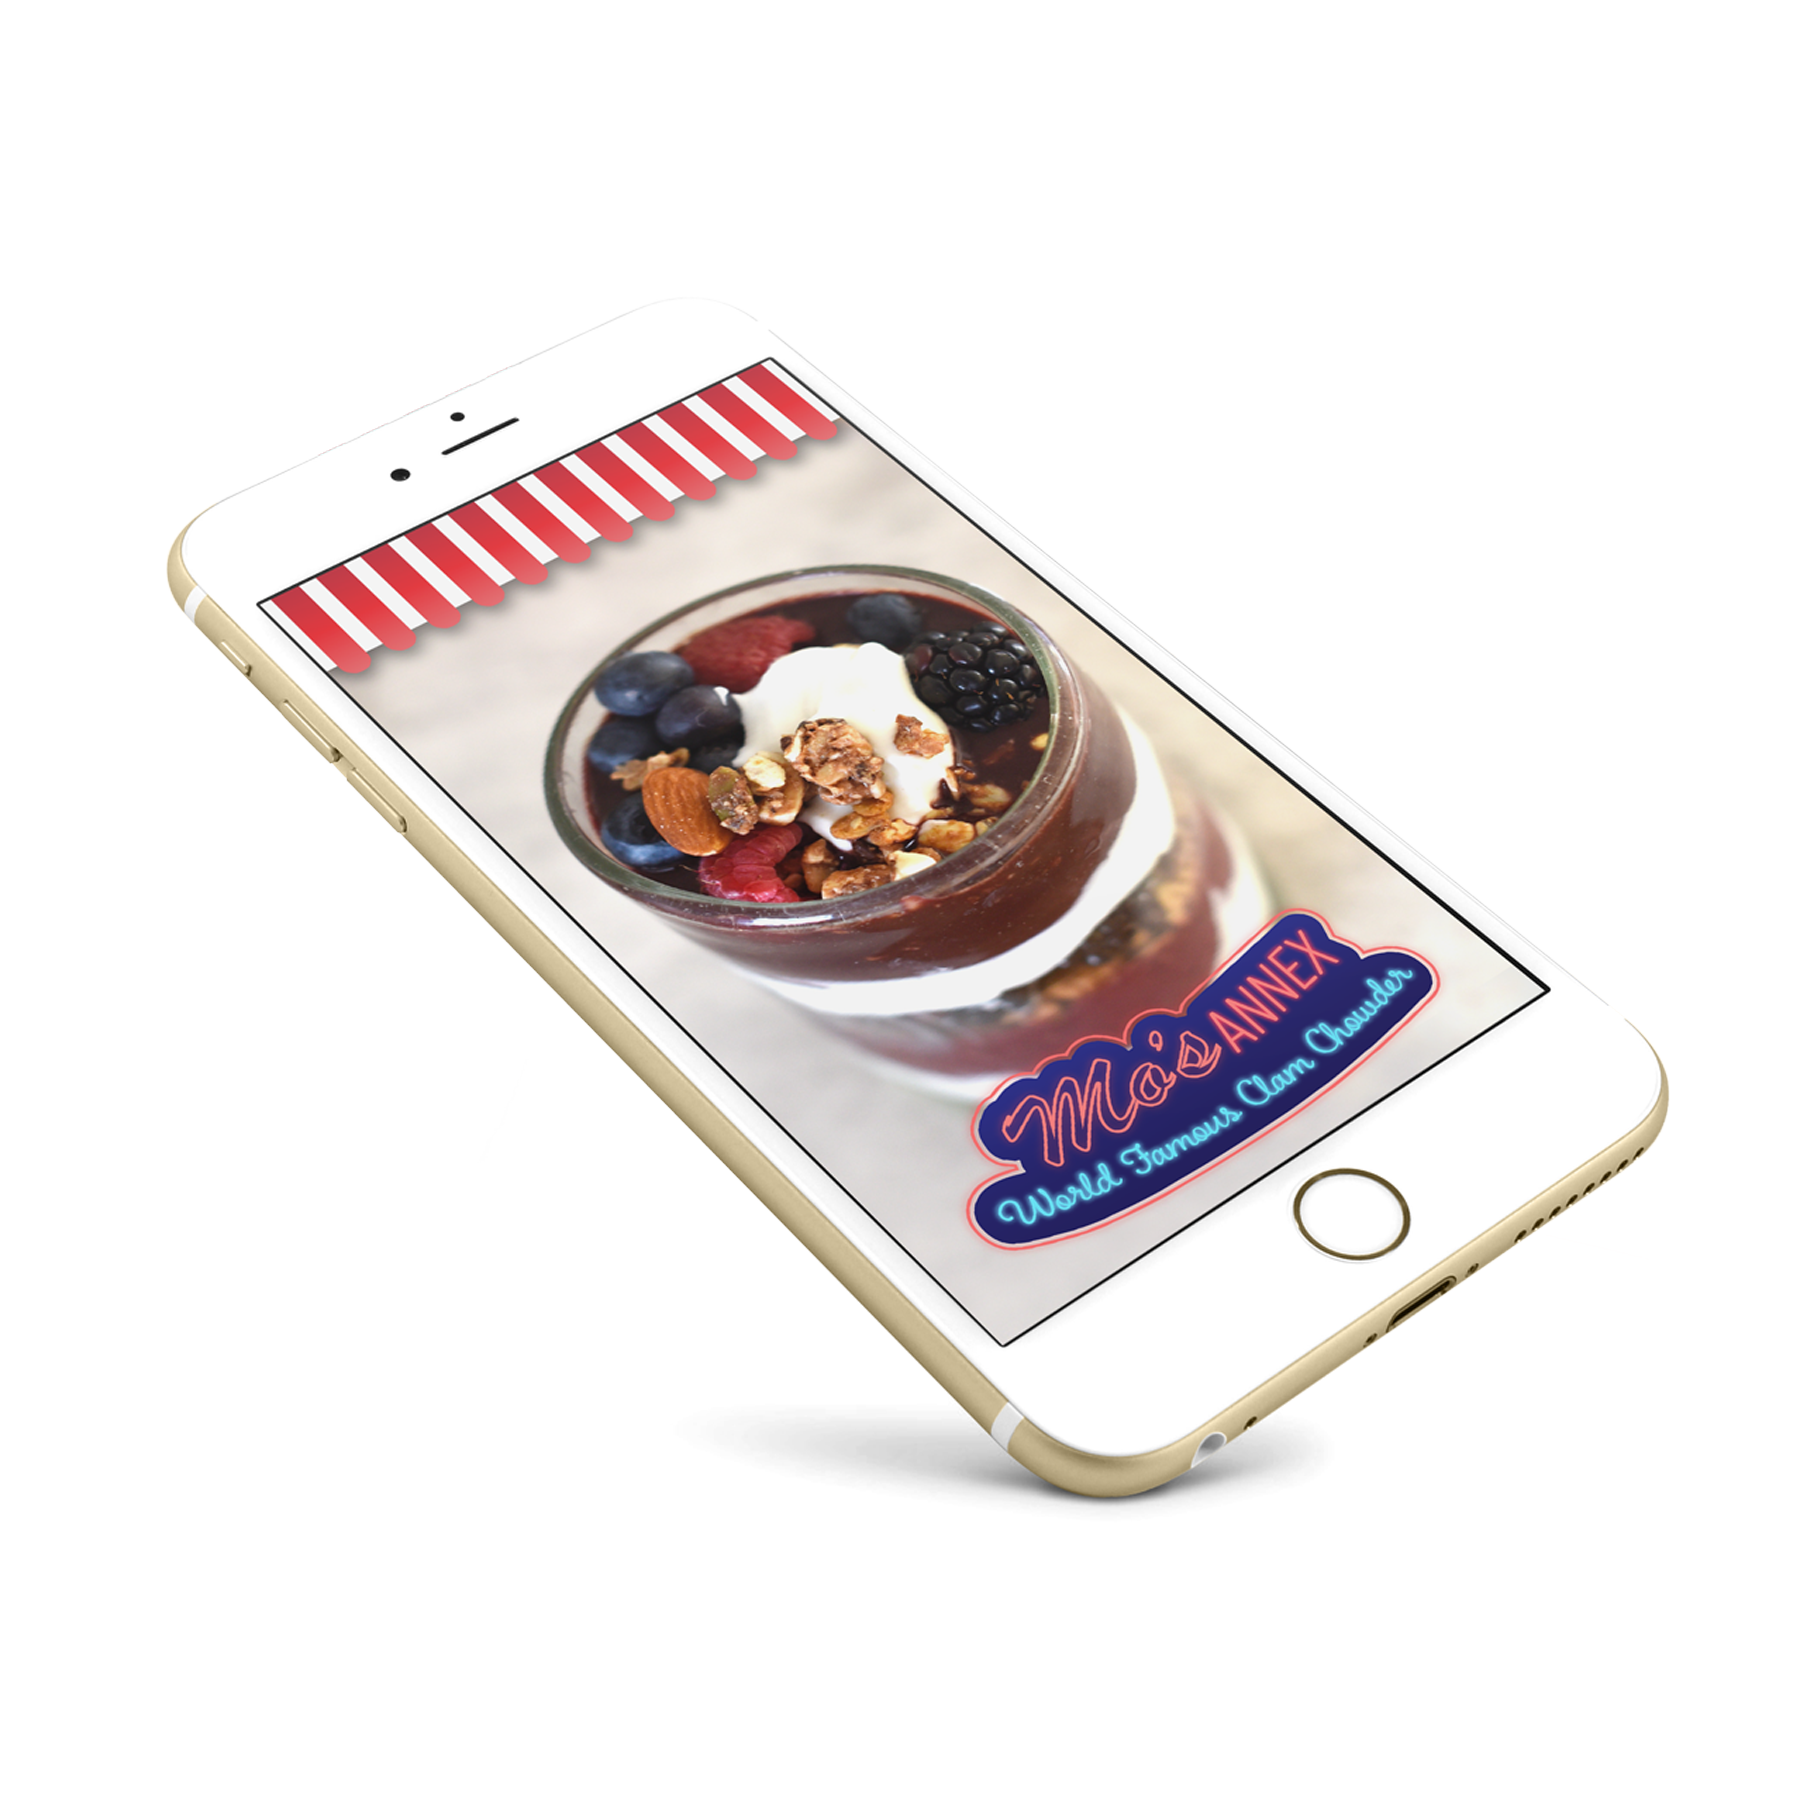 Business Snapchat Geofilters - Mo's Clam Chowder is a restaurant chain found along the coast of Oregon. They approached me with the idea of promoting their businesses by designing individual Snapchat Geofilters for each location. Every single filter is designed primarily with a unique aspect and element derived from the local area.